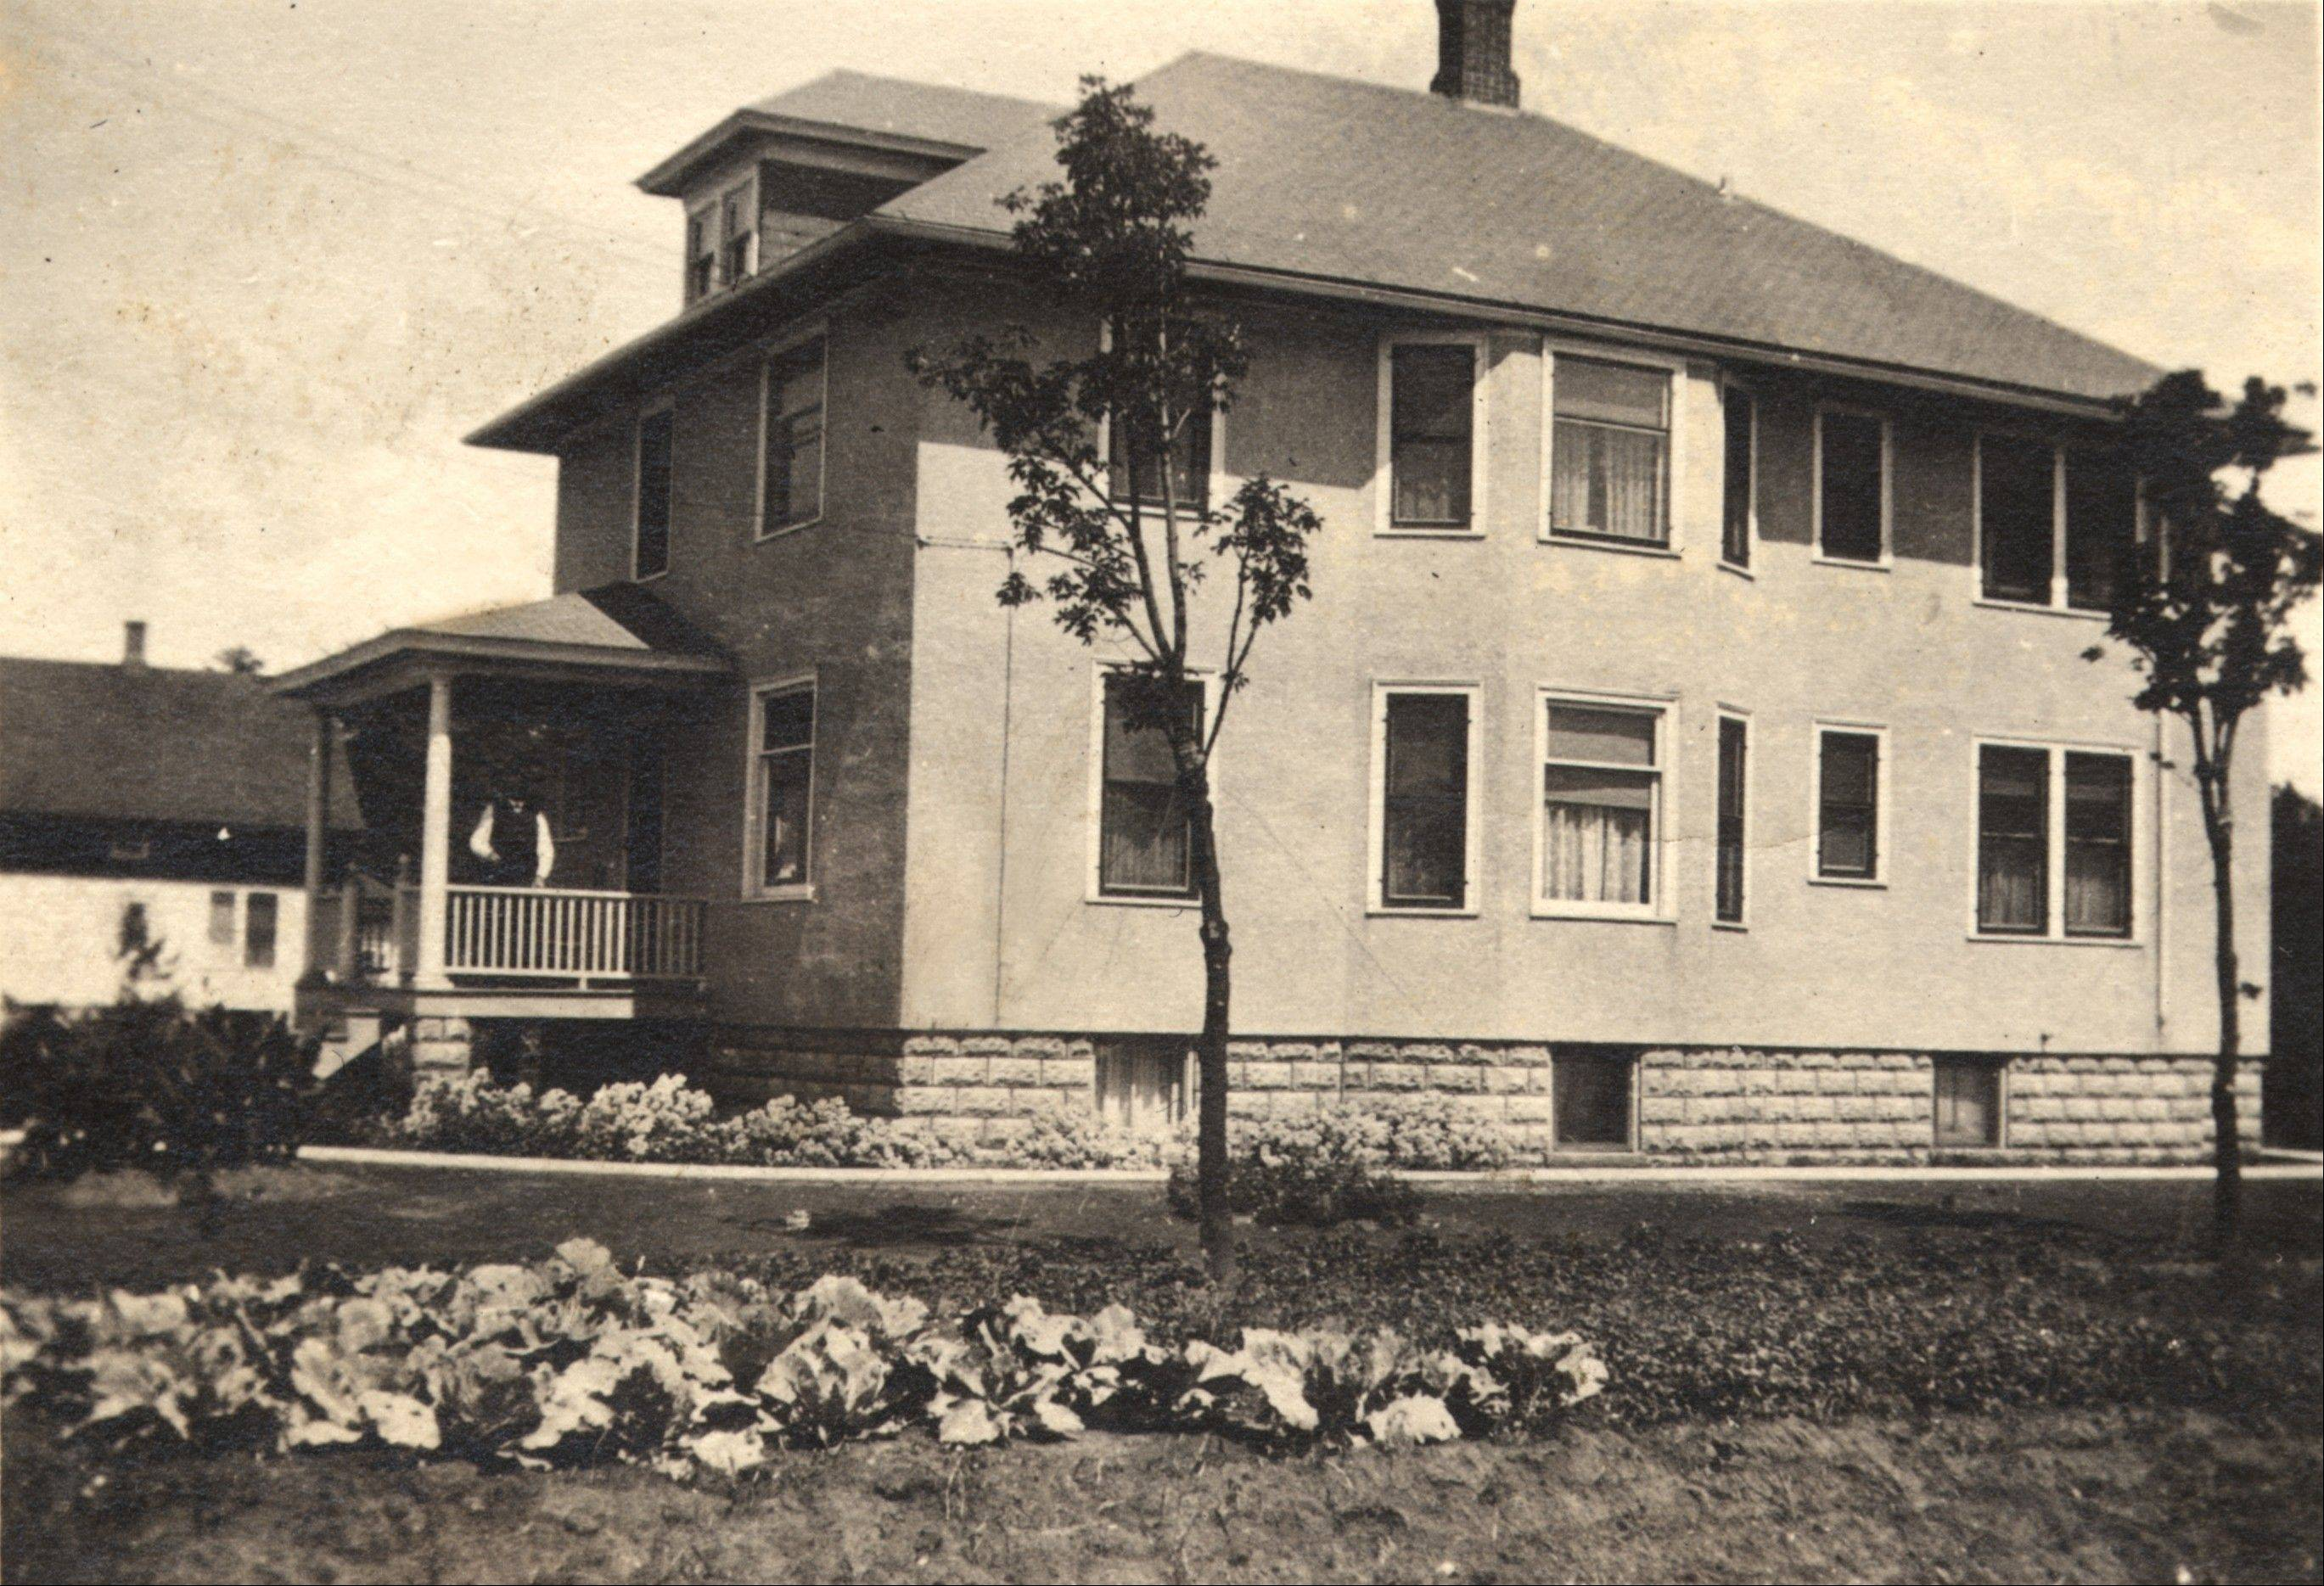 Henry Oltrogge built this home -- with help -- in 1918.